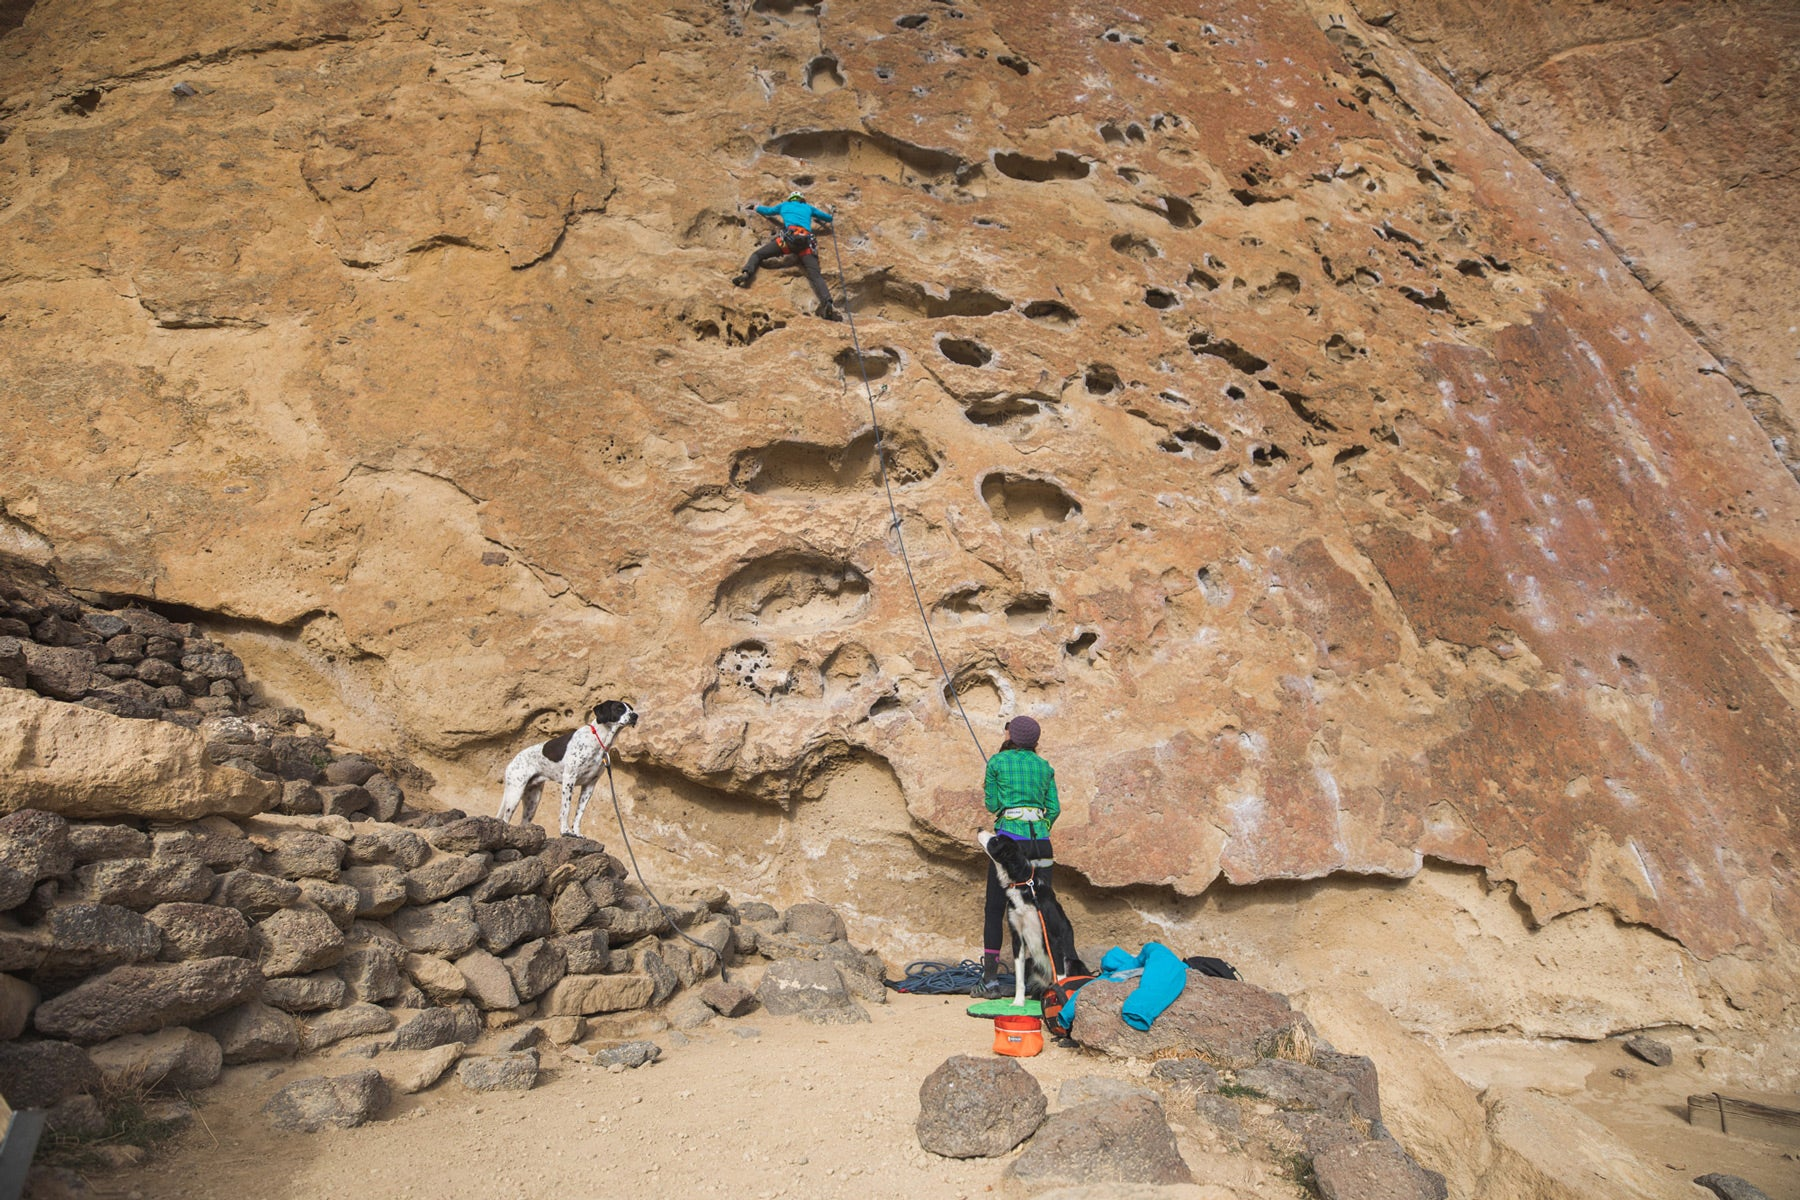 """Climber goes up the climb """"Five Gallon Buckets"""" while belayer and dog look up from below at the crag."""